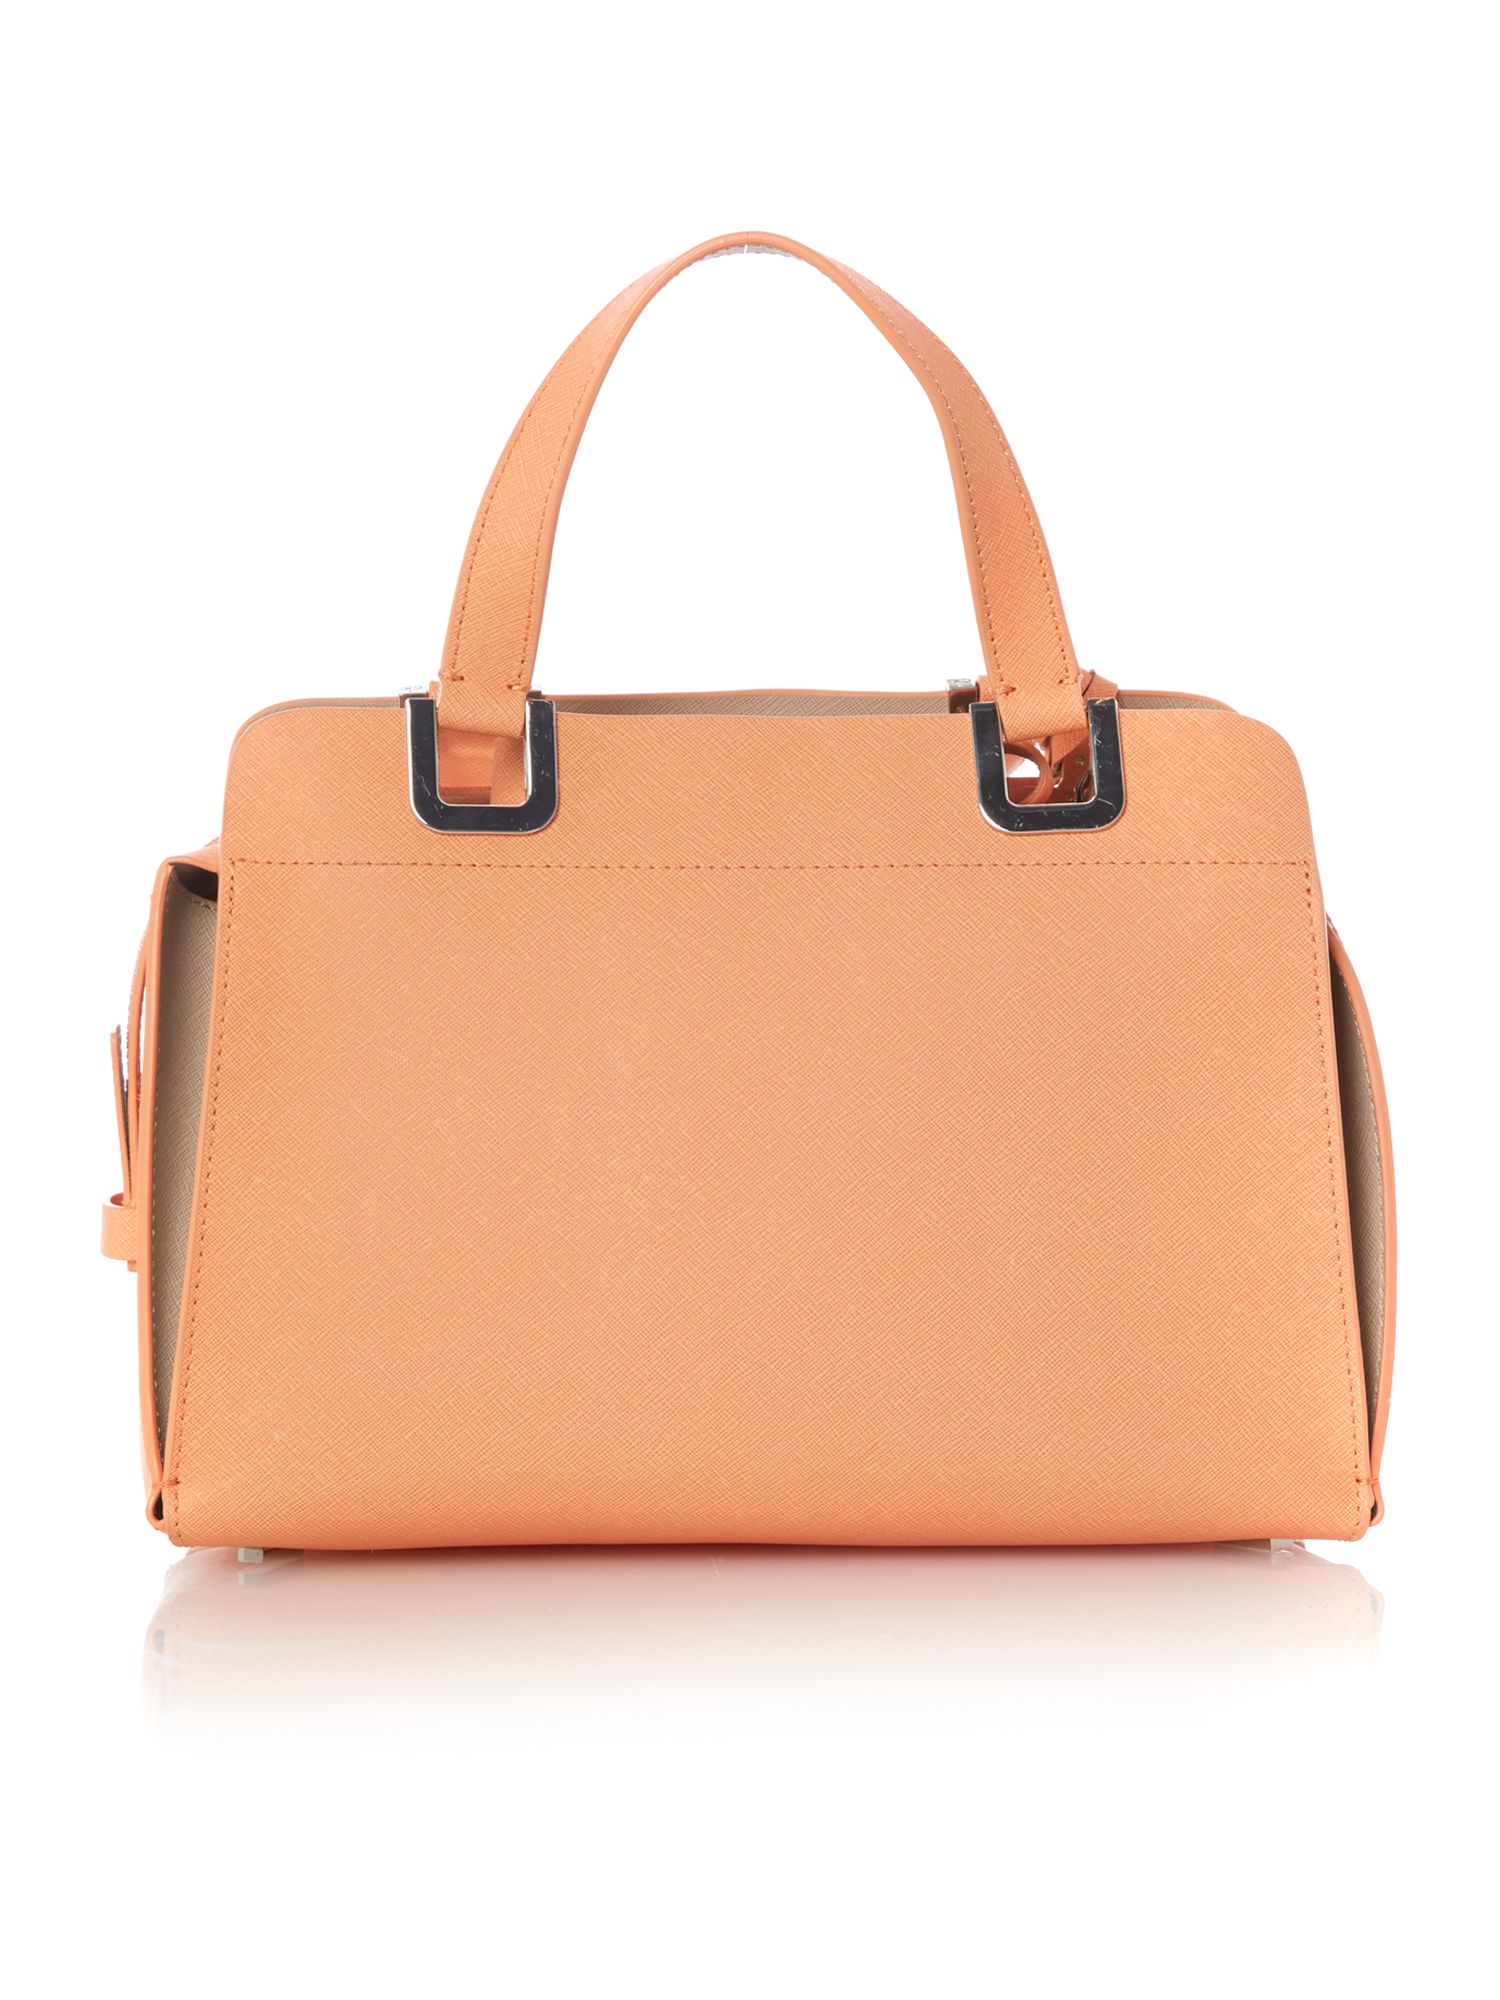 Sofie small coral bowling bag